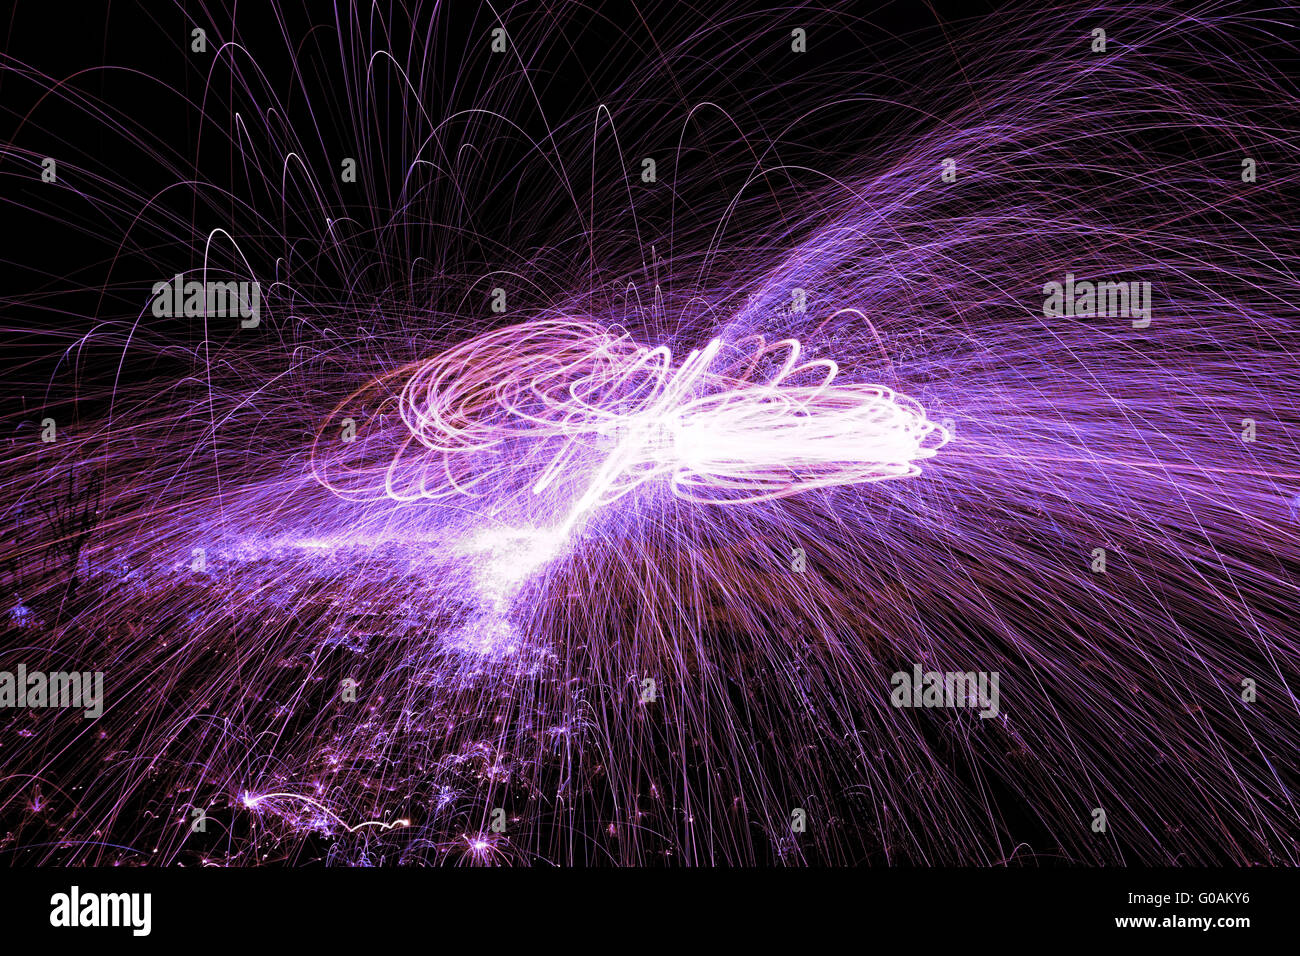 Showers of hot glowing sparks from spinning steel wool. Stock Photo